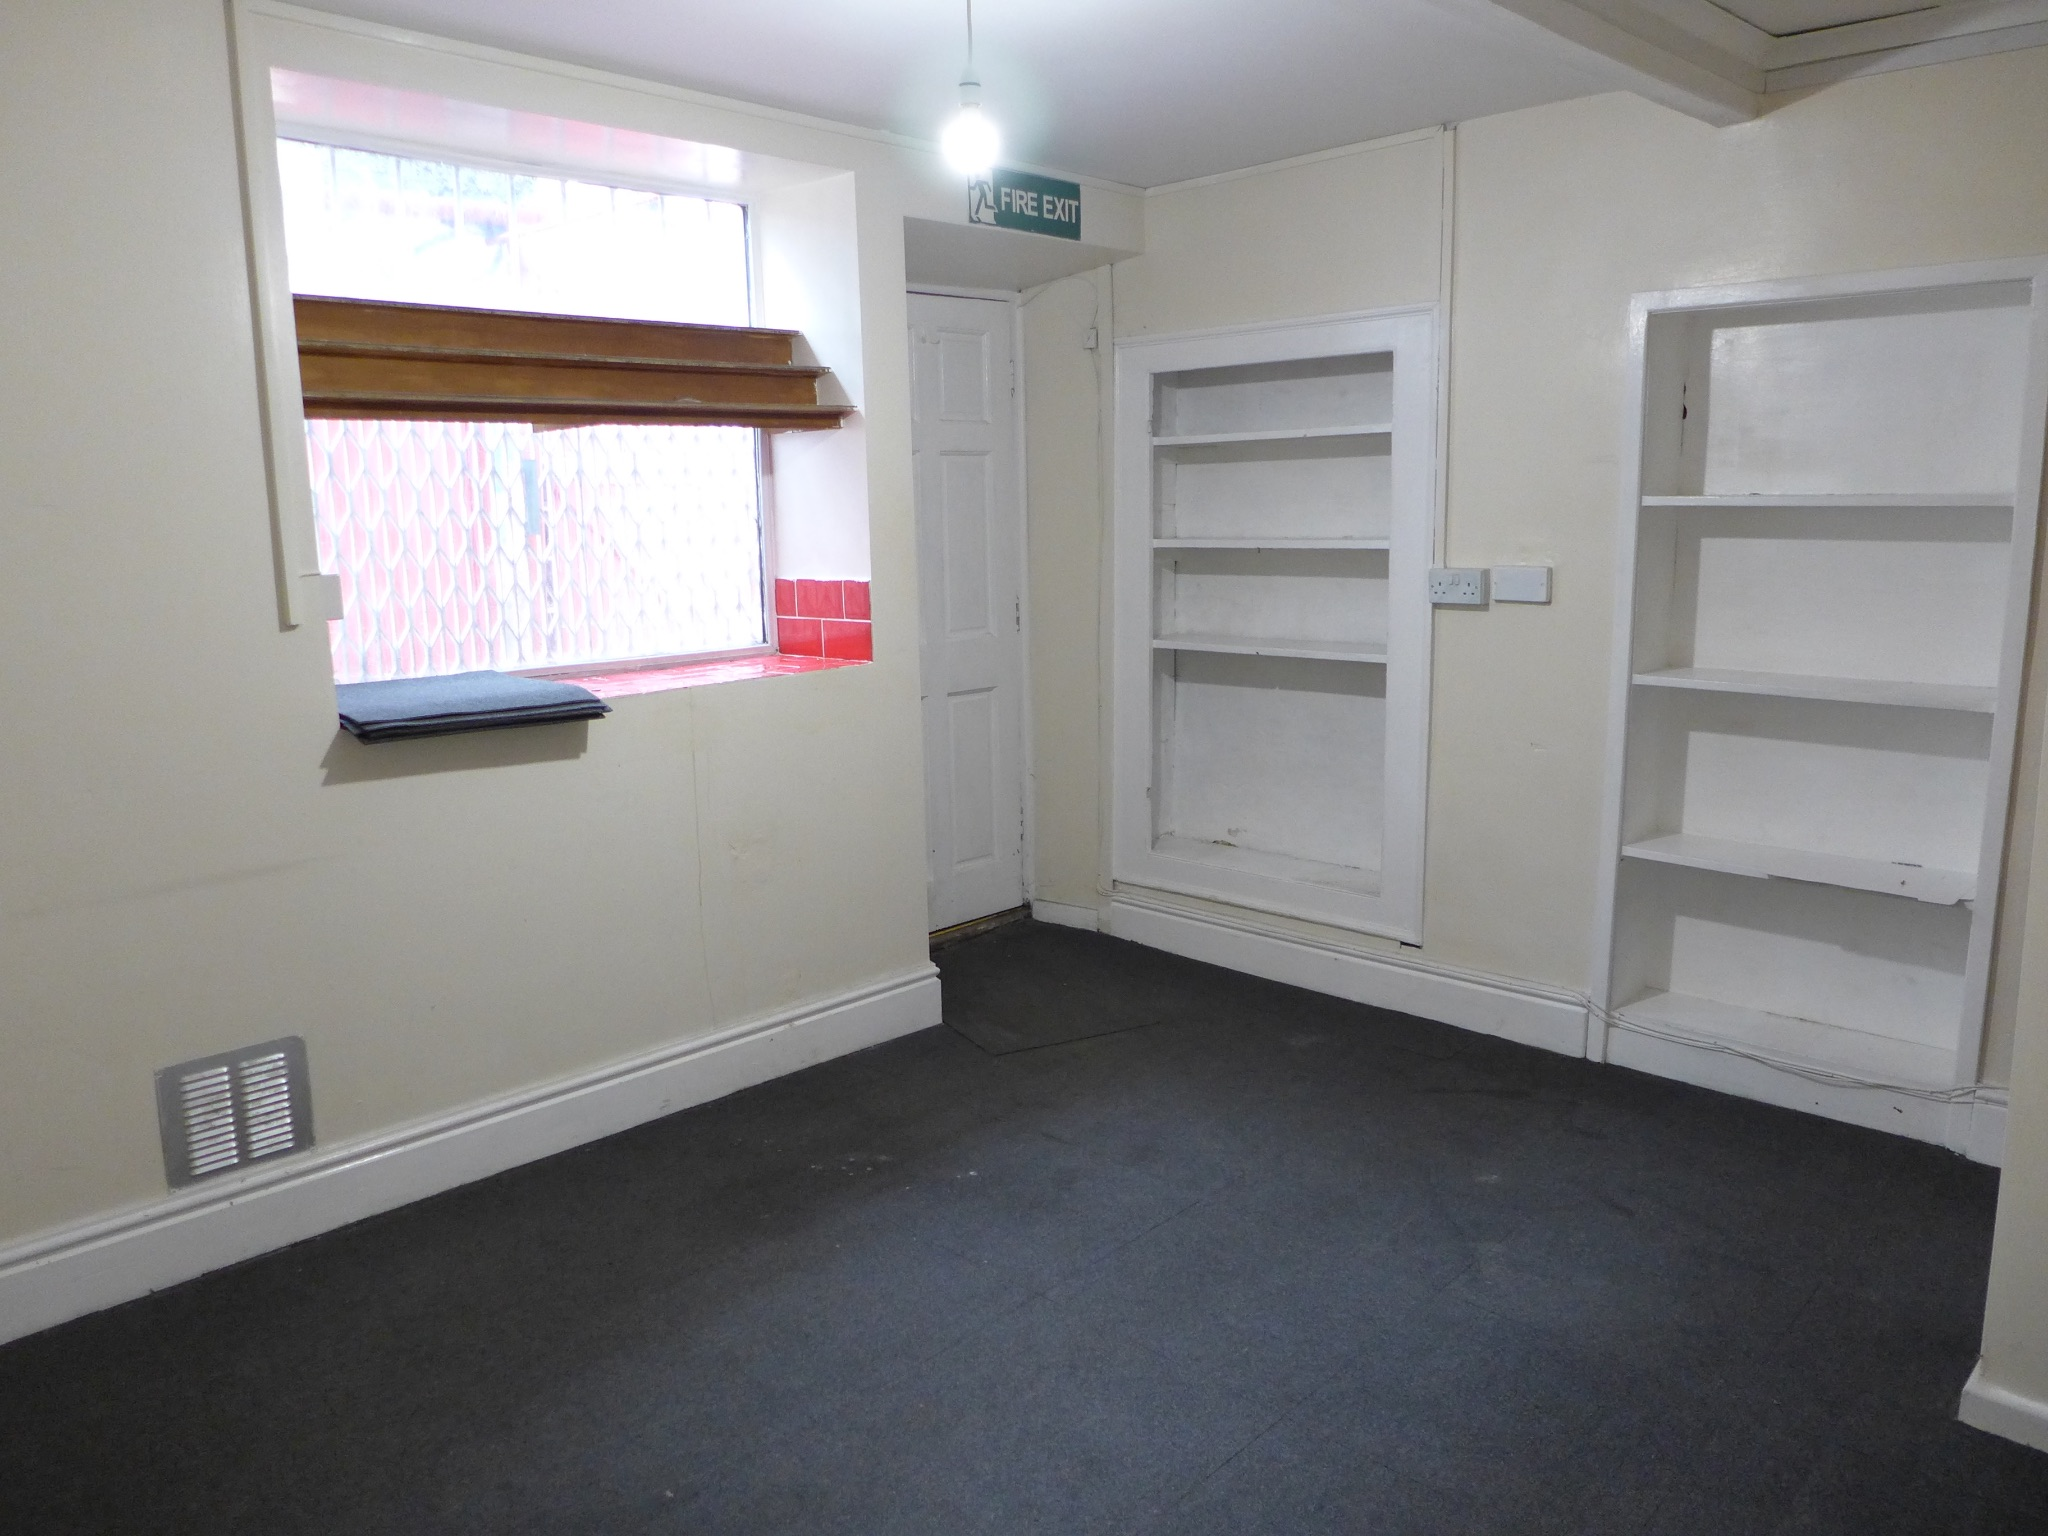 Empty Retail Premises For Sale in Calderdale - Photograph 5.